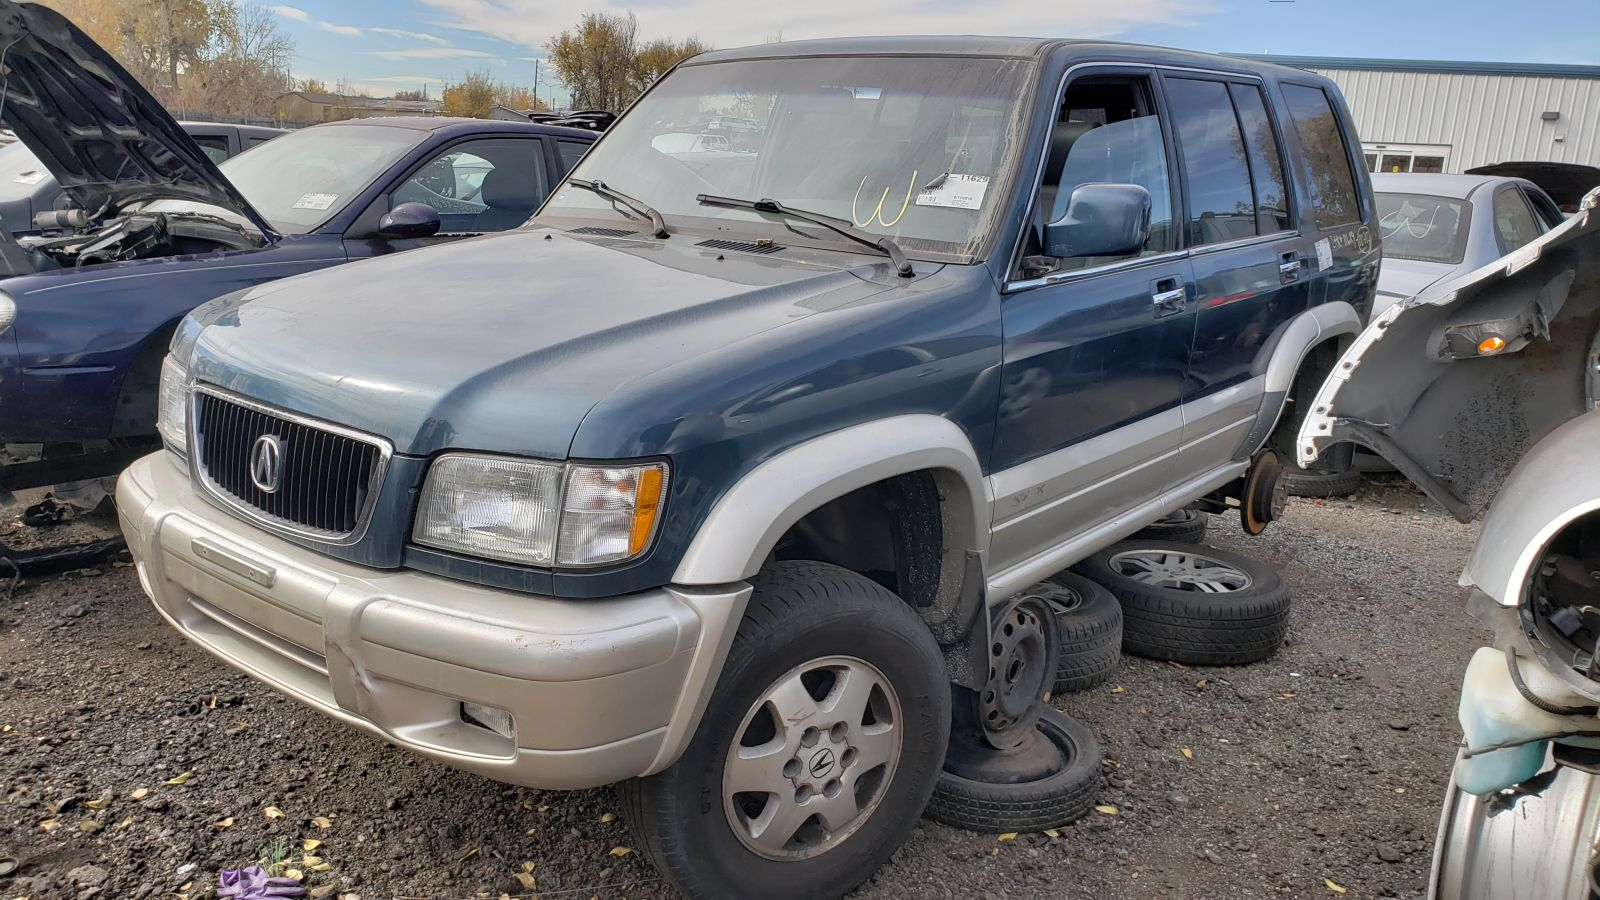 hight resolution of 1999 acura slx in colorado wrecking yard lh front view 2018 murilee martin